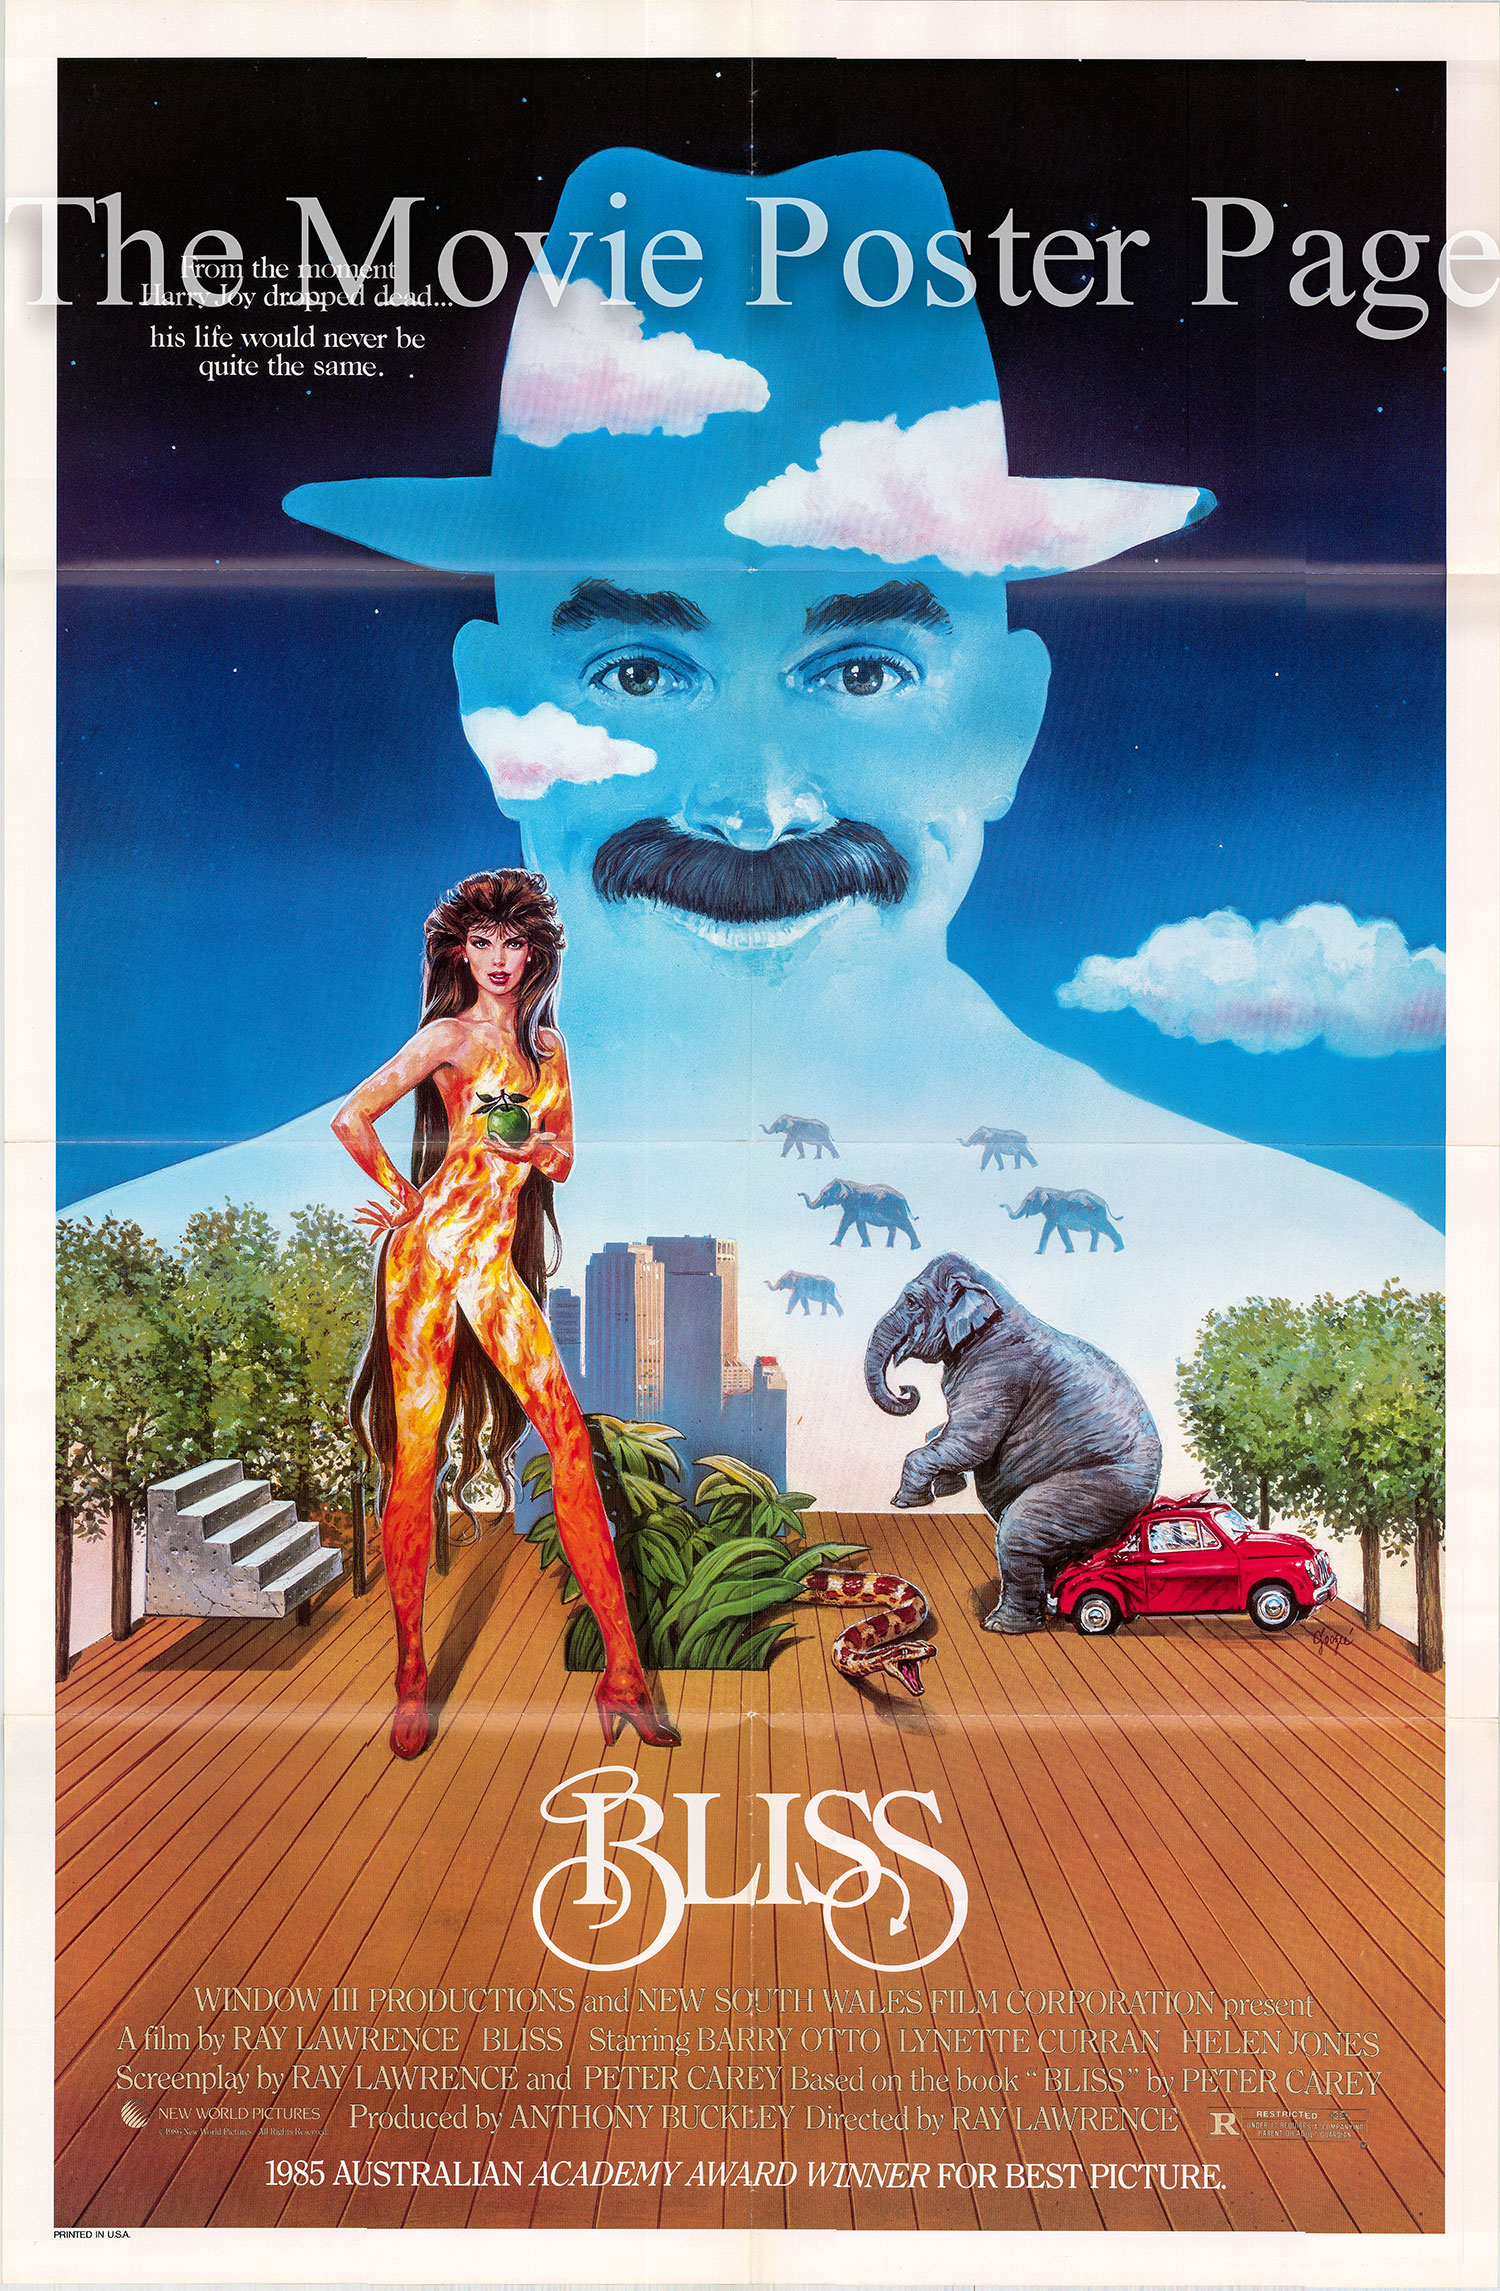 Pictured is a US one-sheet promotional poster for the 1097 Ray Lawrence film Bliss starring Barry Otto.